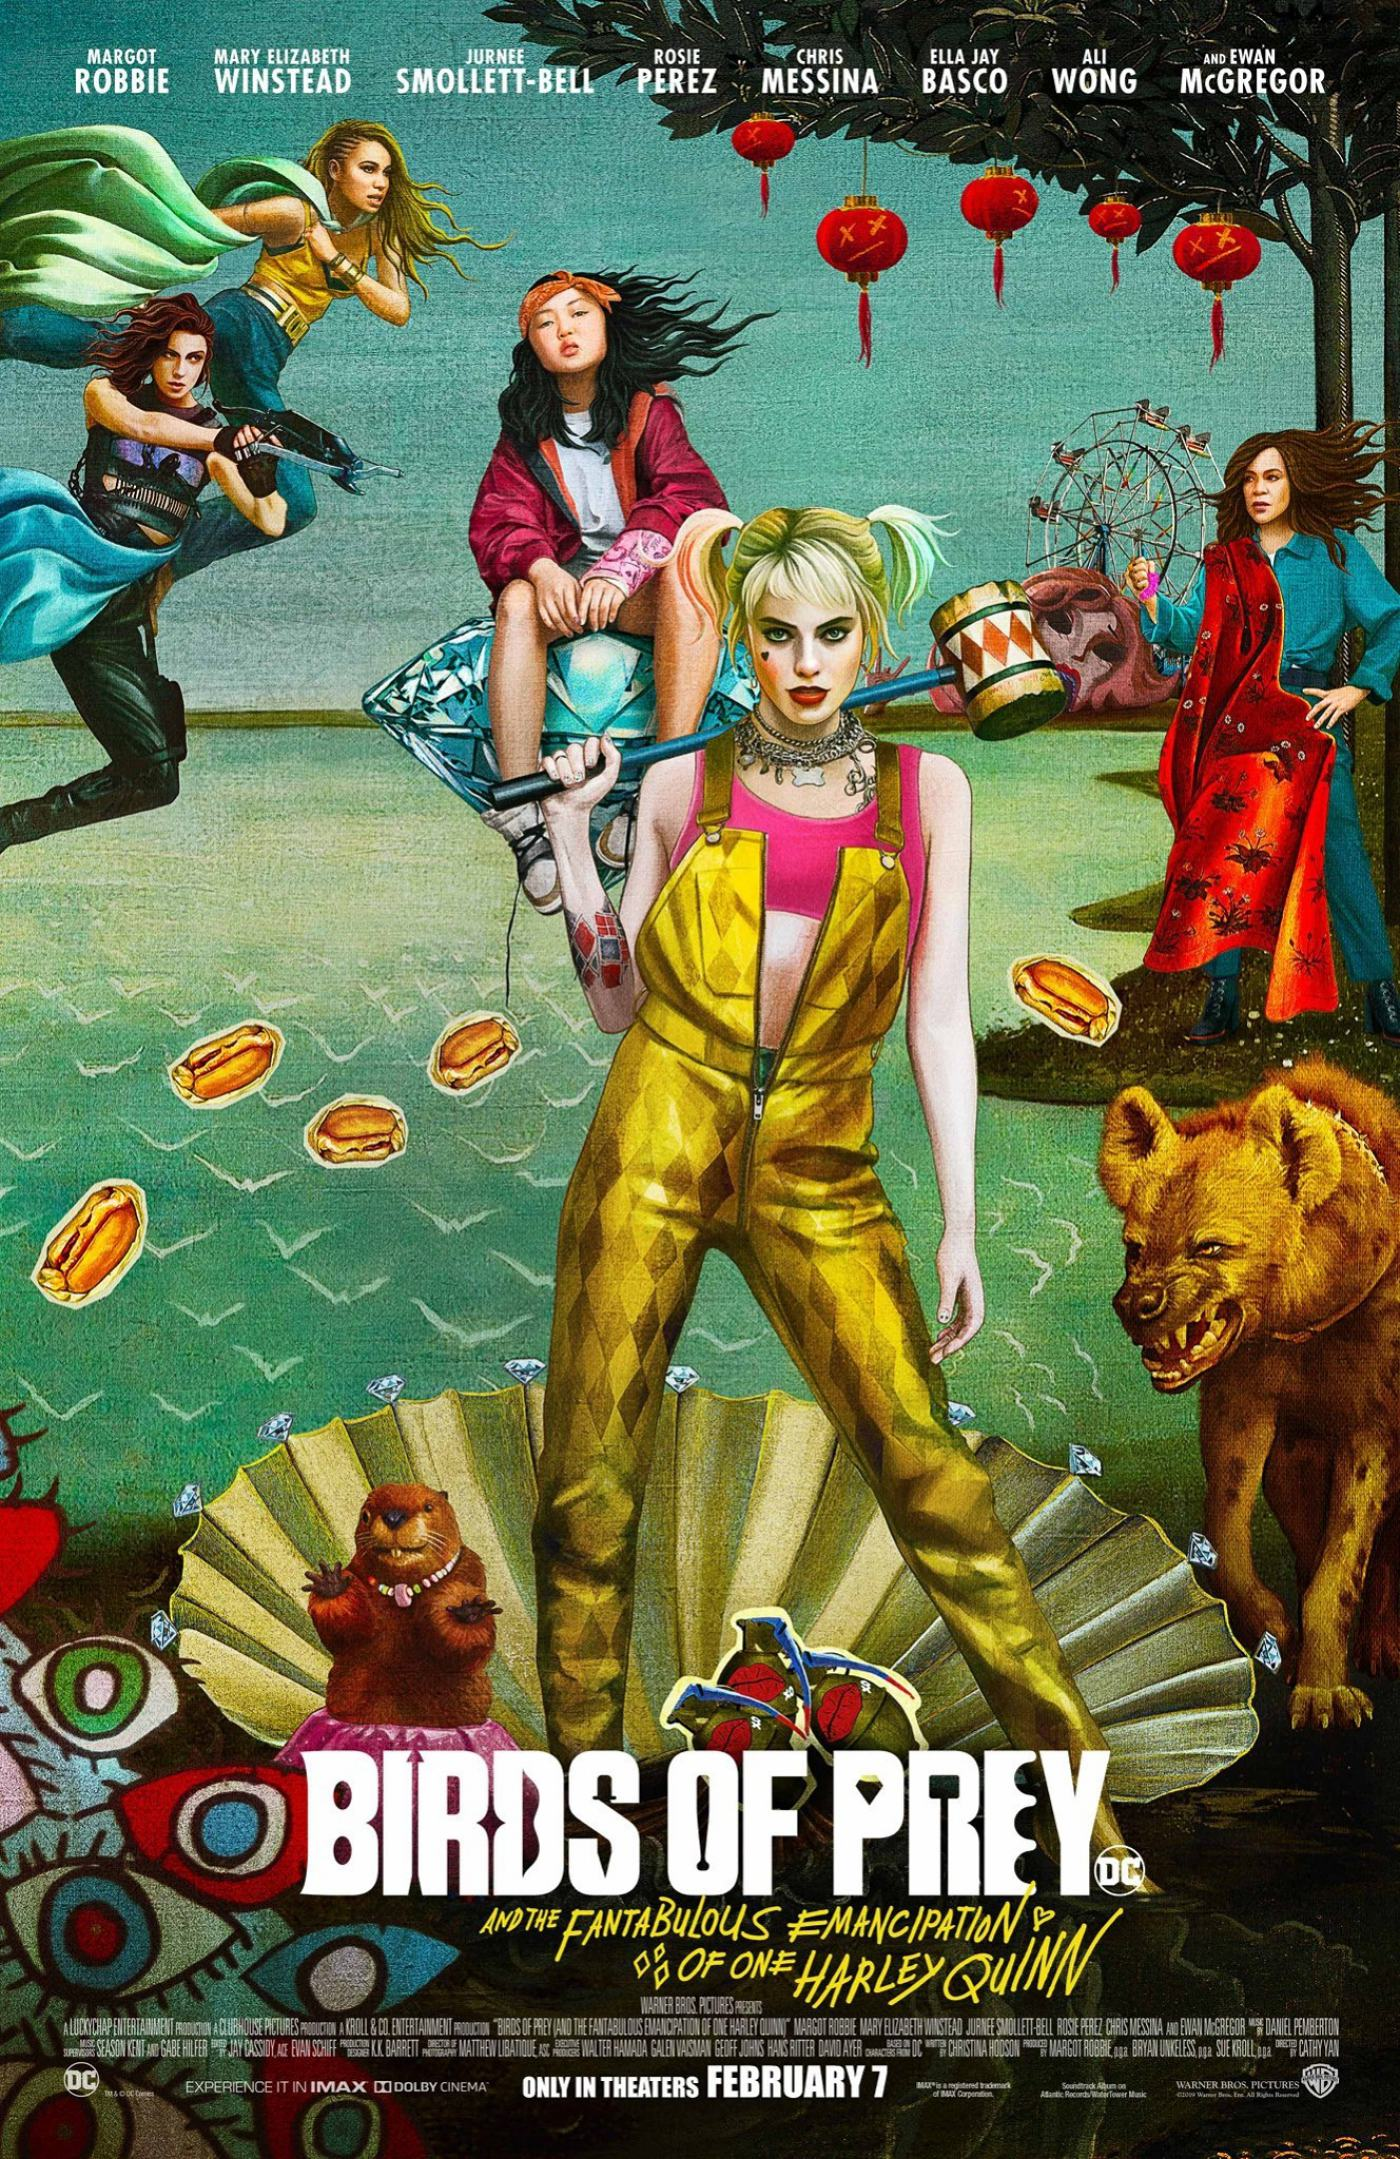 Birds of Prey (And the Fantabulous Emancipation of One Harley Quinn) Poster #2